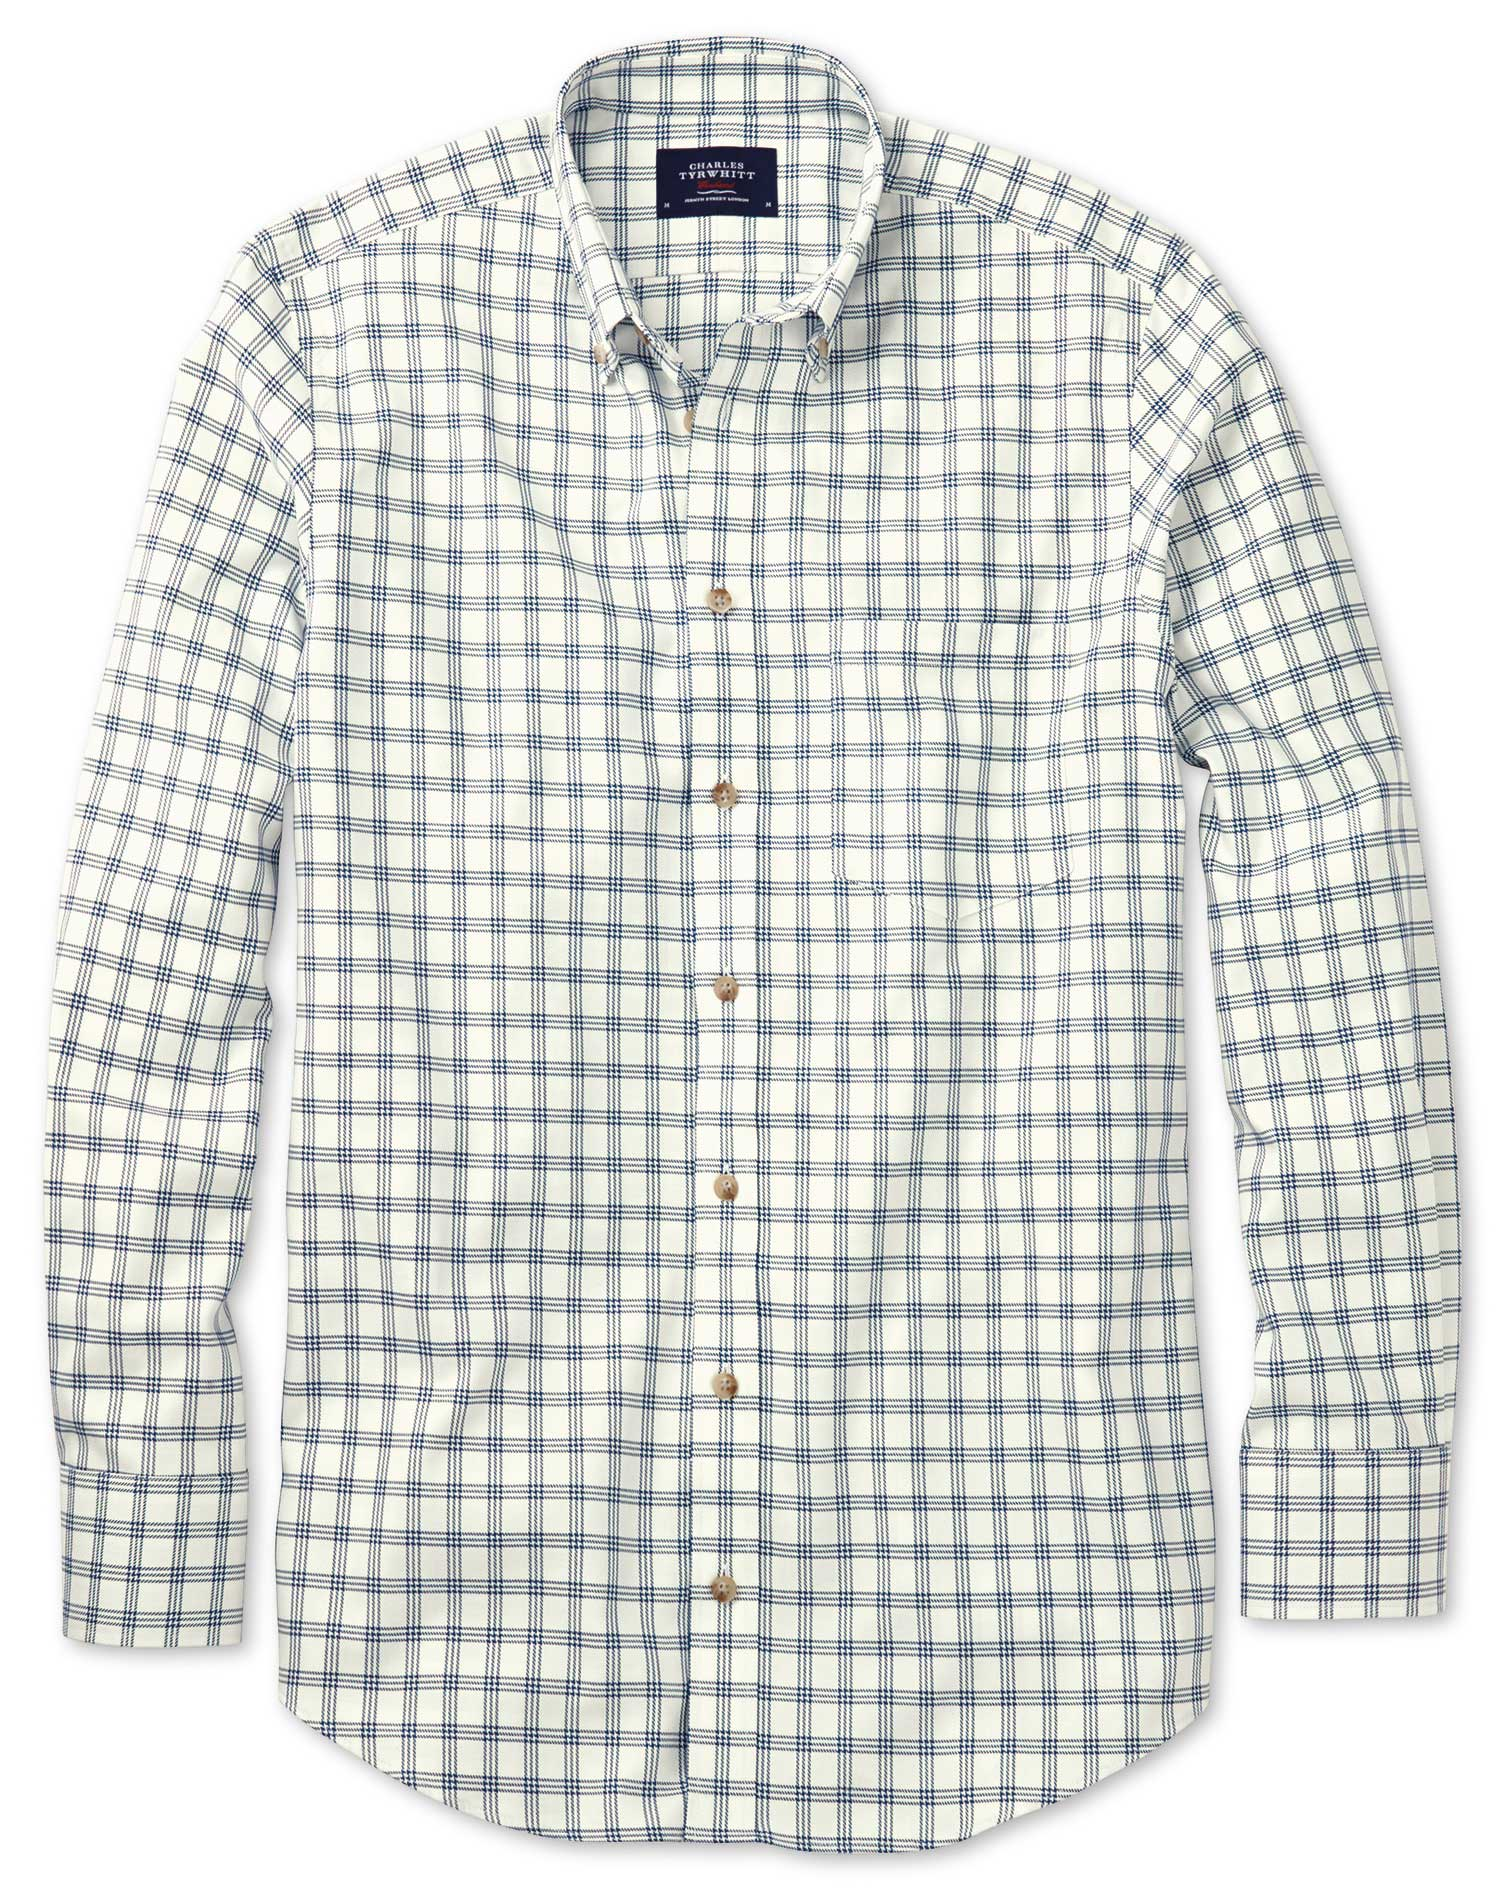 Slim Fit Non-Iron Windowpane Check White and Navy Cotton Shirt Single Cuff Size Medium by Charles Ty